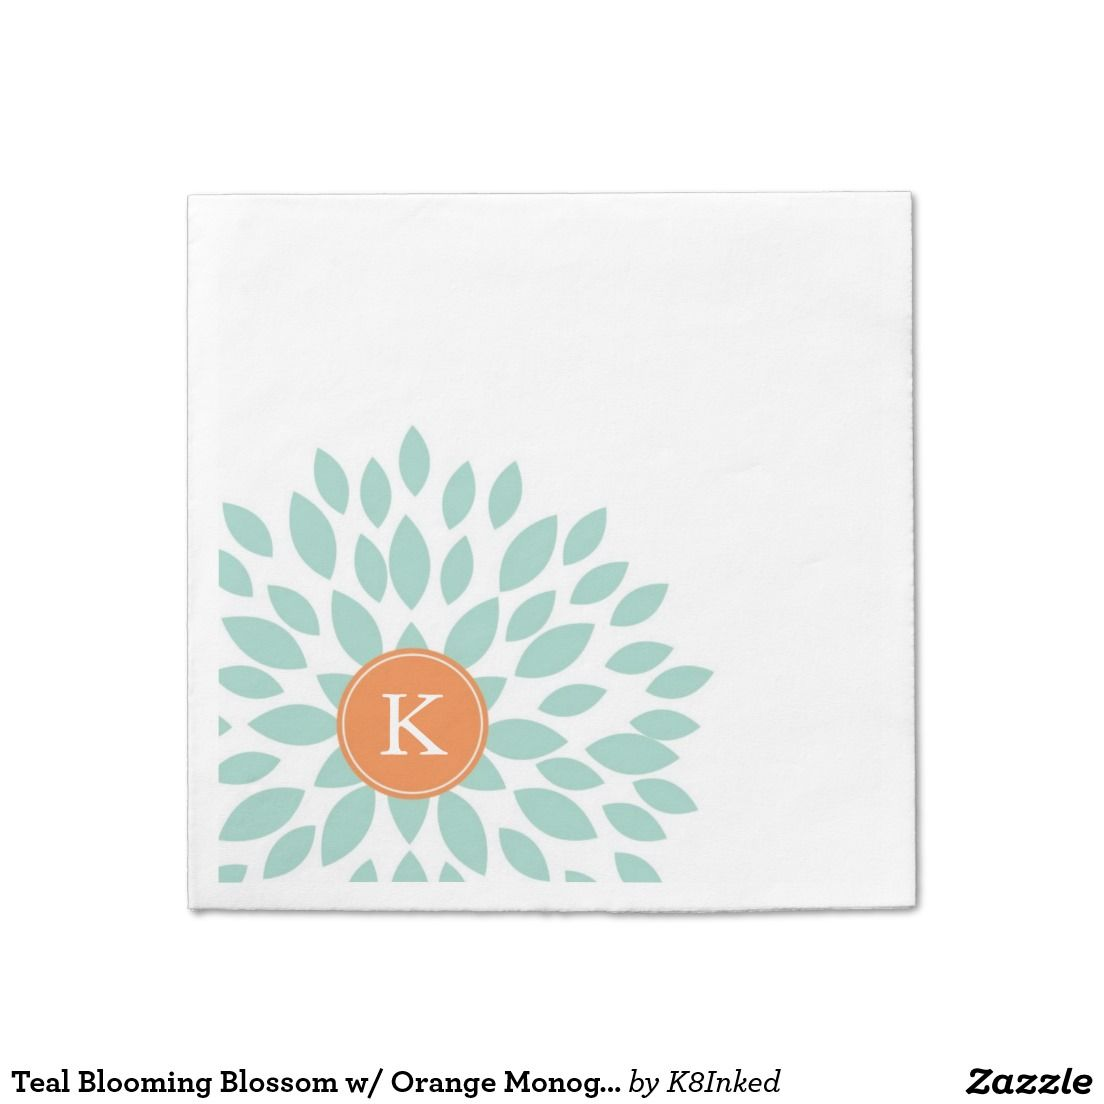 Teal Blooming Blossom w/ Orange Monogram Initial - Personalized Custom Standard Cocktail Napkin - http://www.zazzle.com/k8inked*  #partysupplies